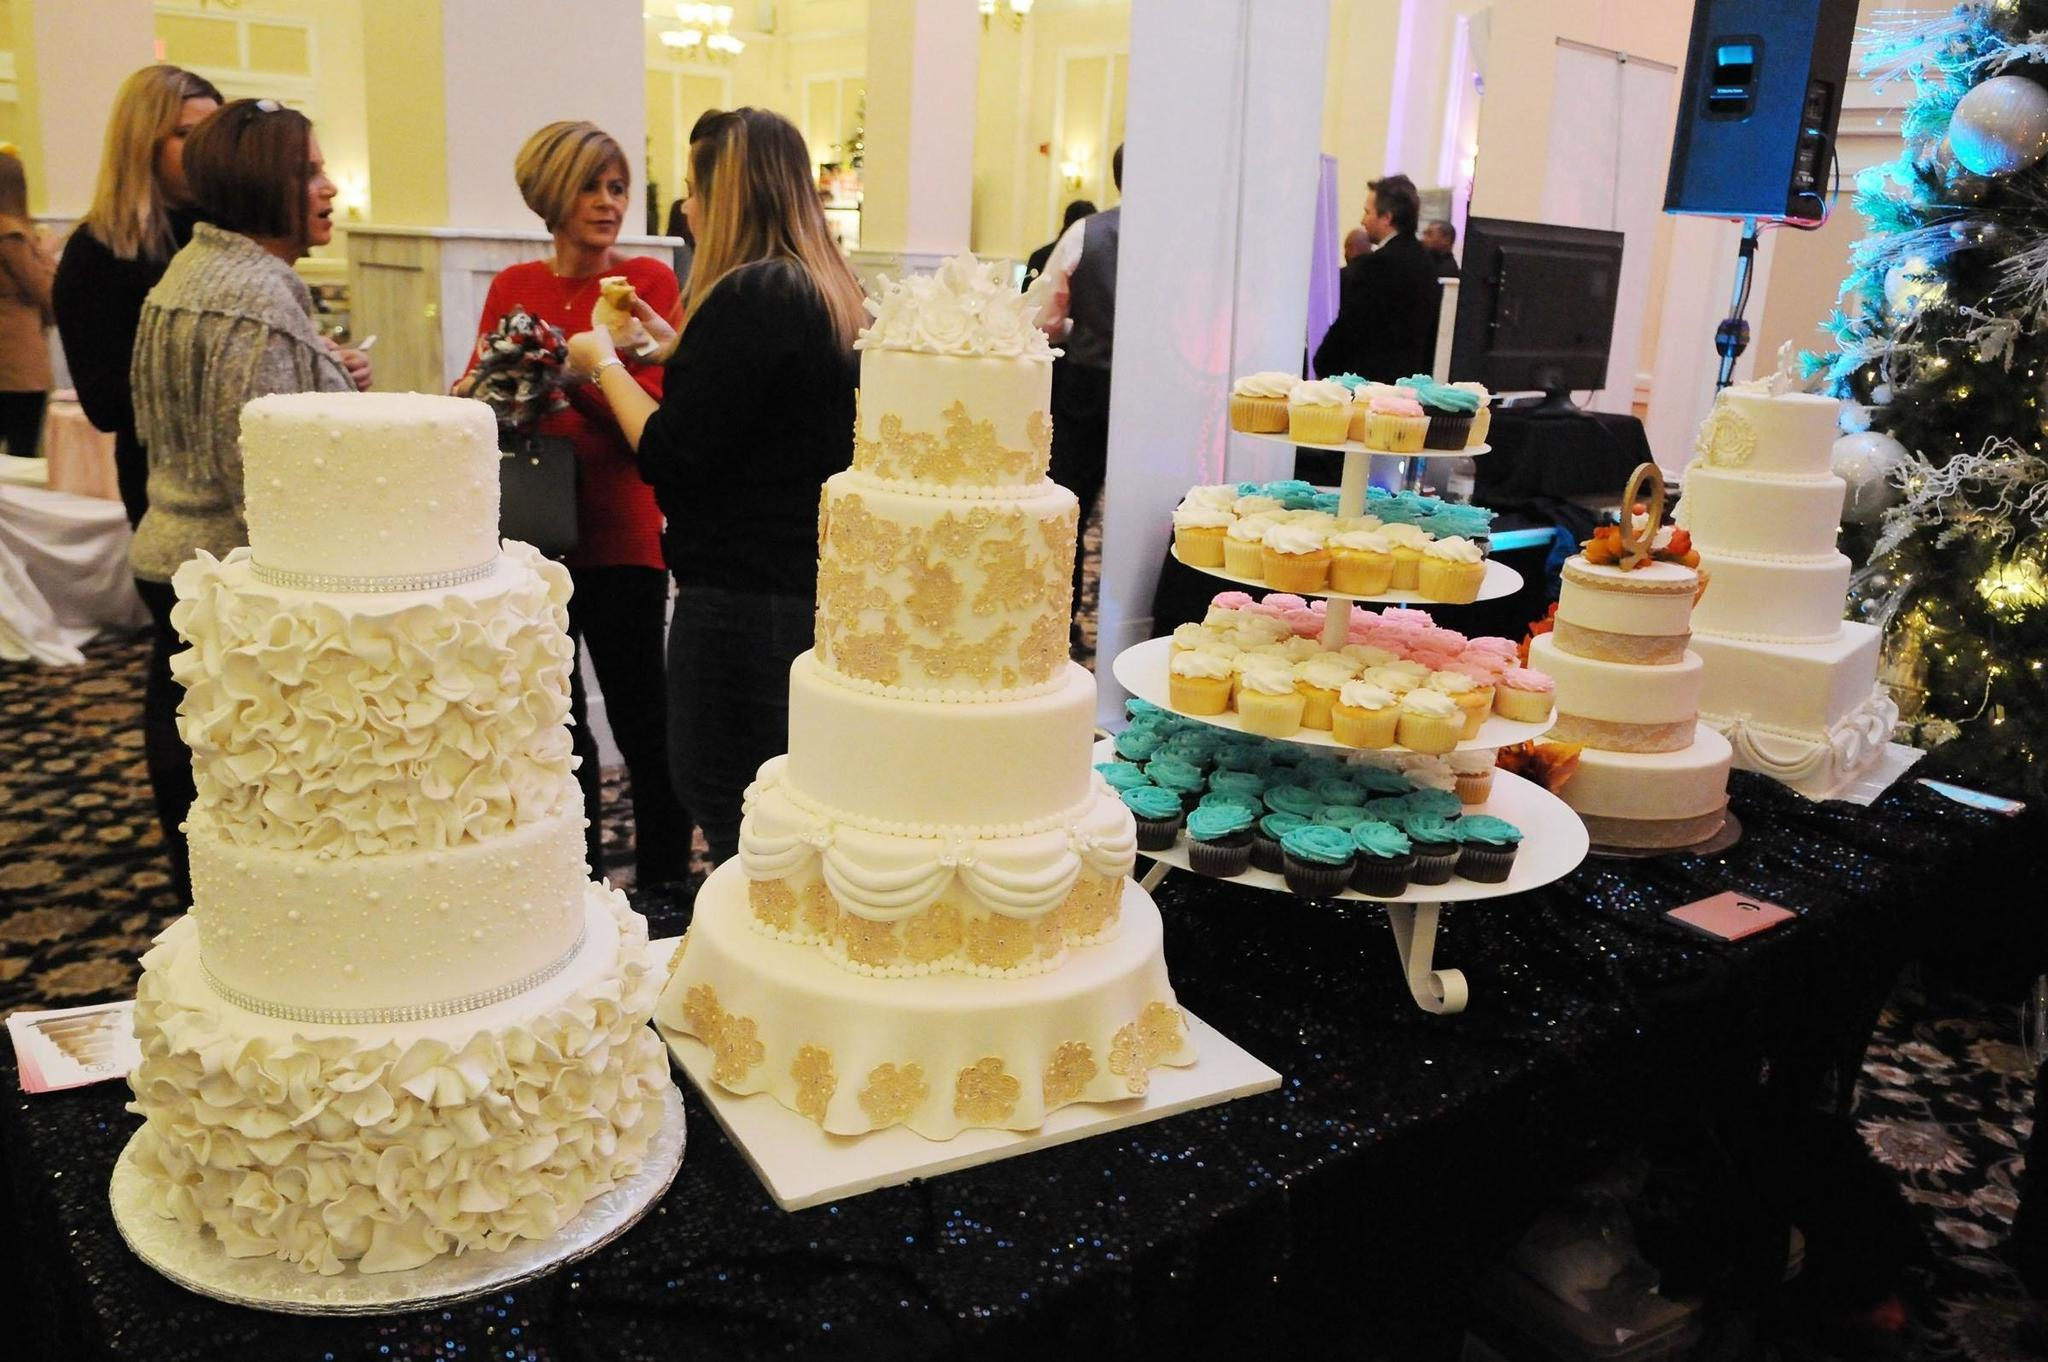 Fake wedding cakes, pre-ceremony \'reveal\' among latest bridal trends ...